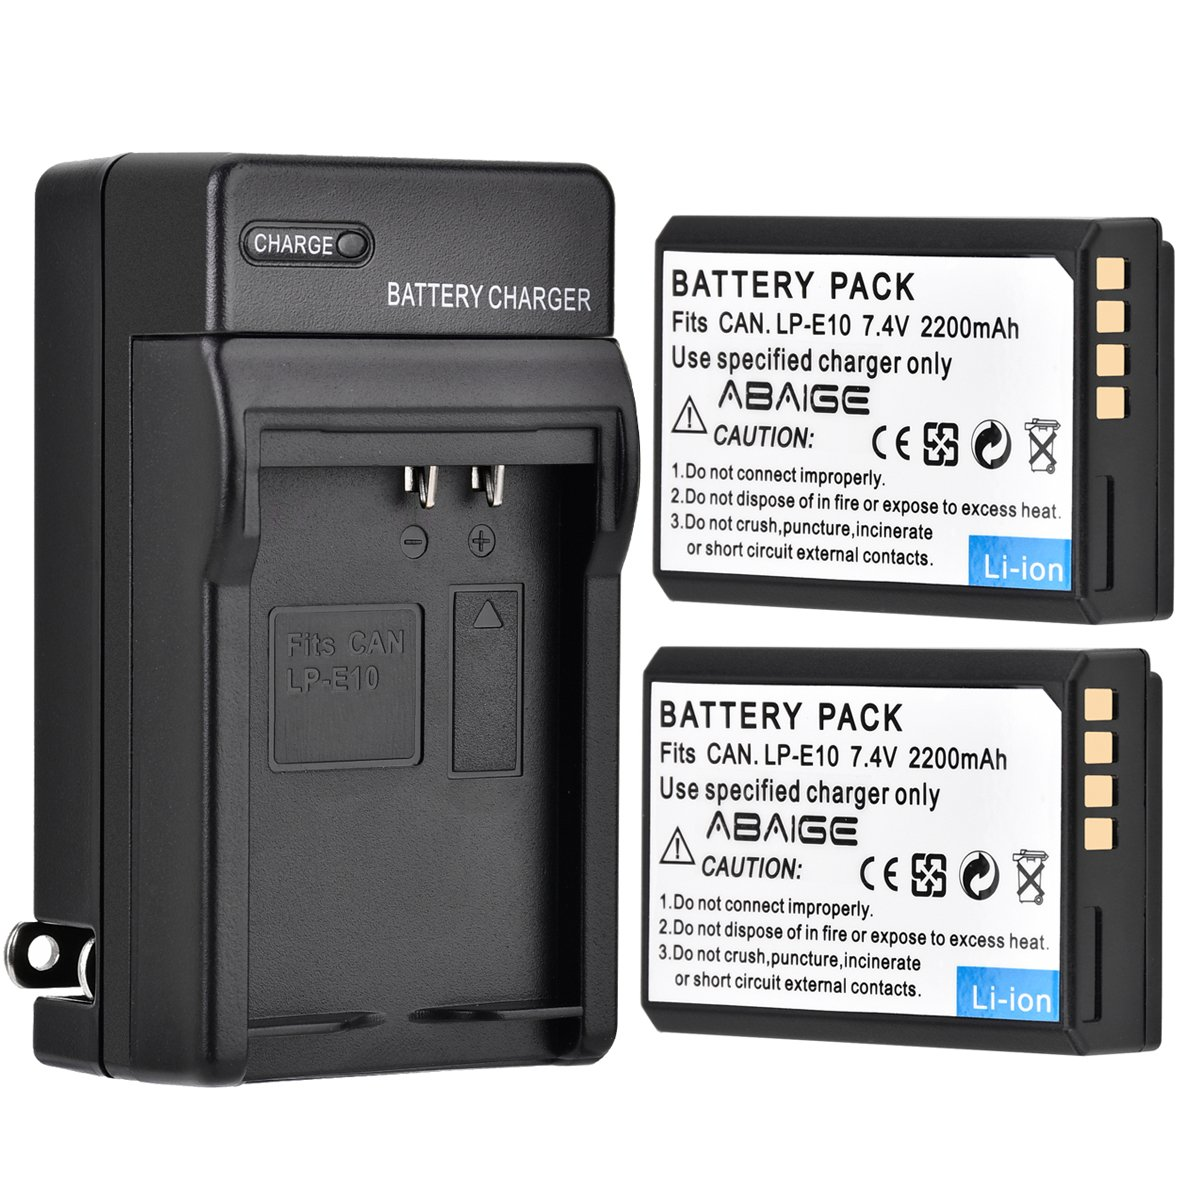 Abaige Pack of 2 LP-E10 2200mAh Replacement Batteries with Battery Charger & AC Charger for EOS Rebel T3, T5, T6, Kiss X50, Kiss X70, EOS 1100D, EOS 1200D, EOS 1300D Digital SLR Camera by Abaige